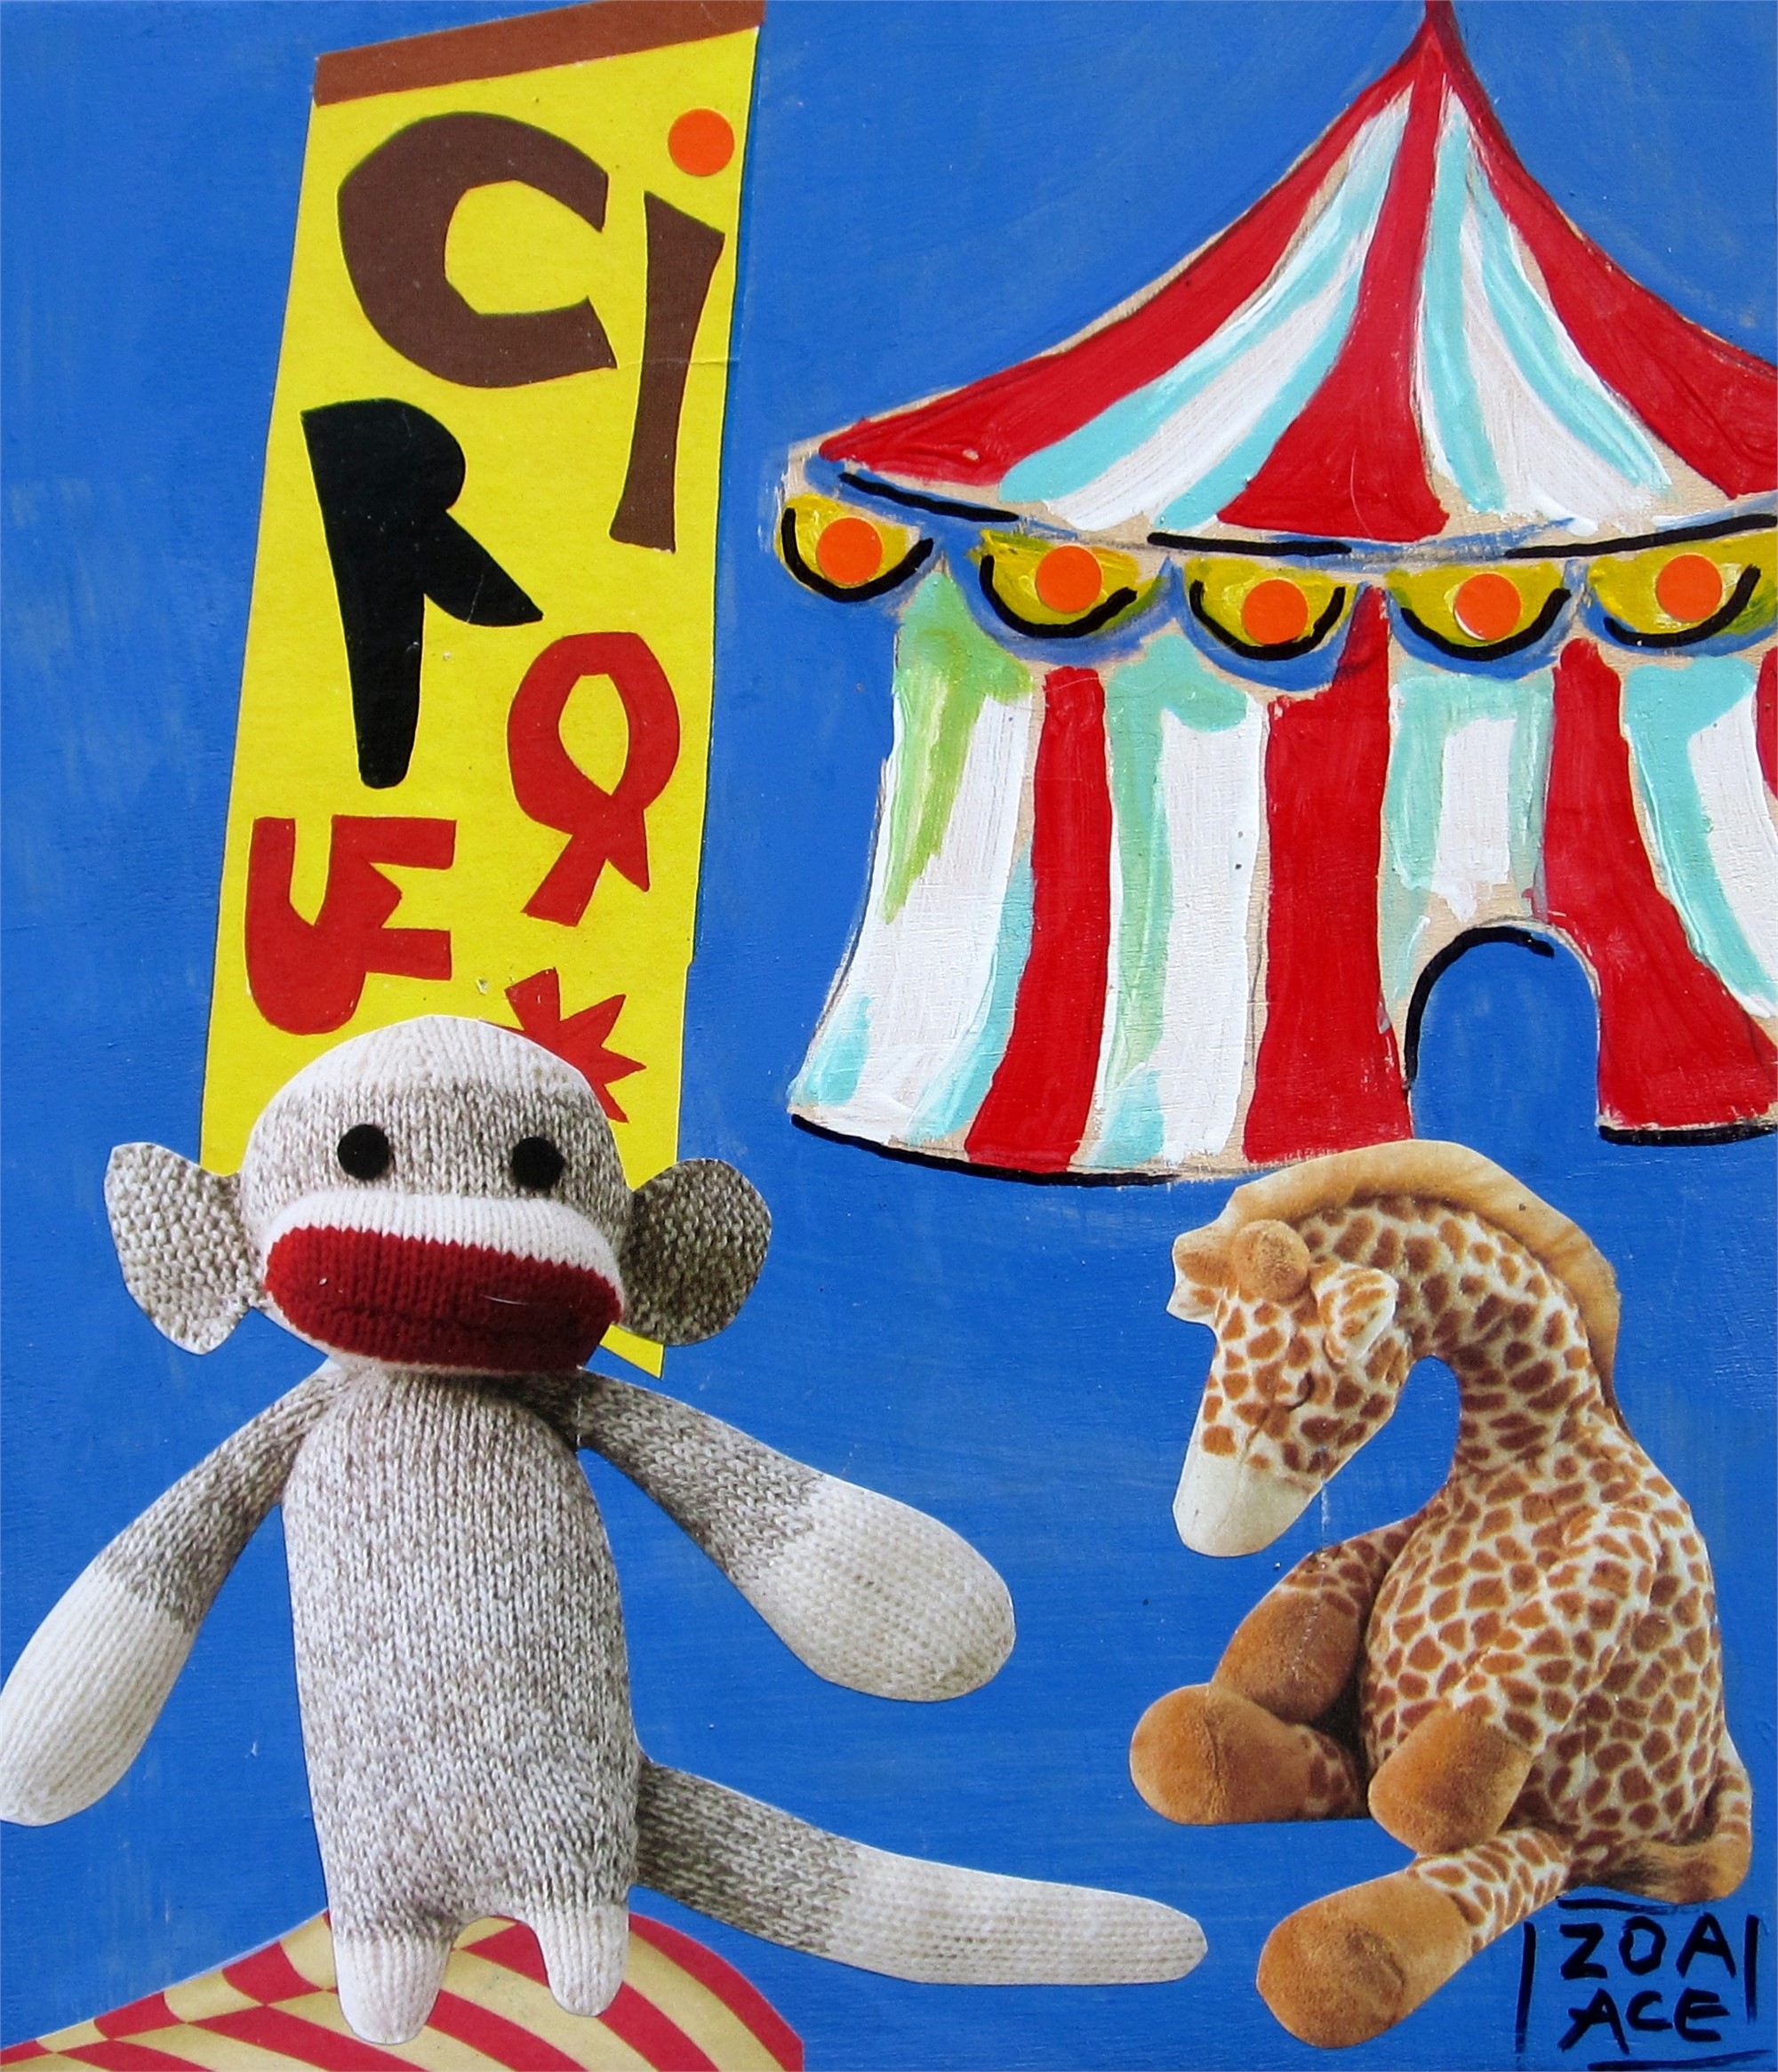 Circus Animals by Zoa Ace